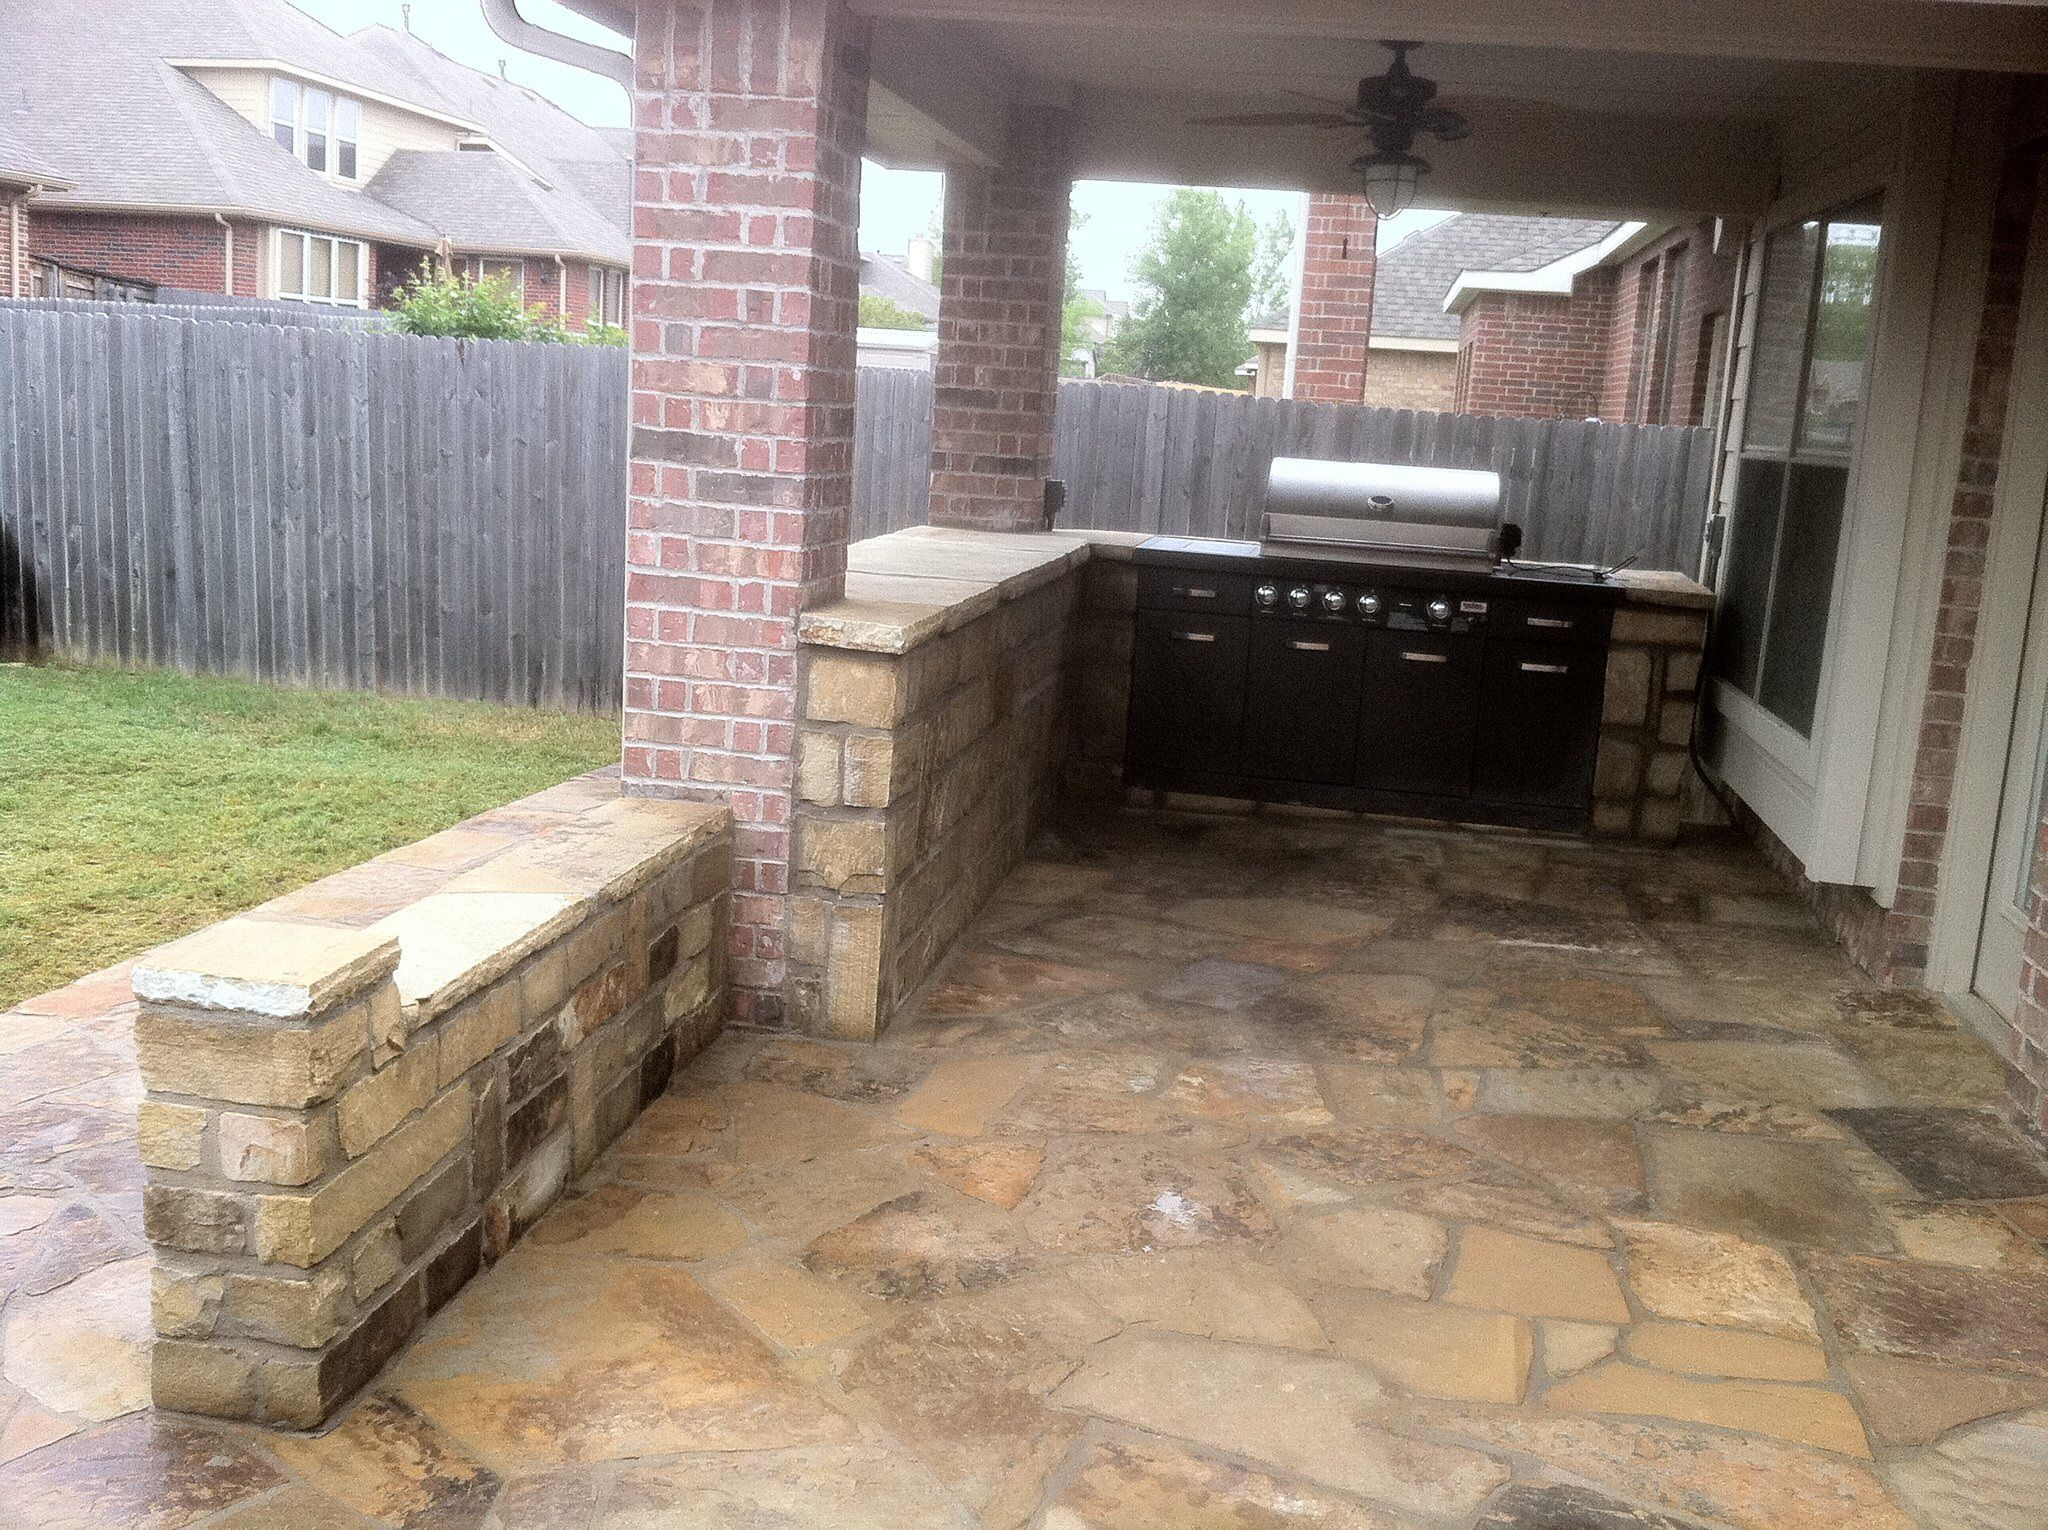 Groundscape, a Fort Worth Landscape Company, install